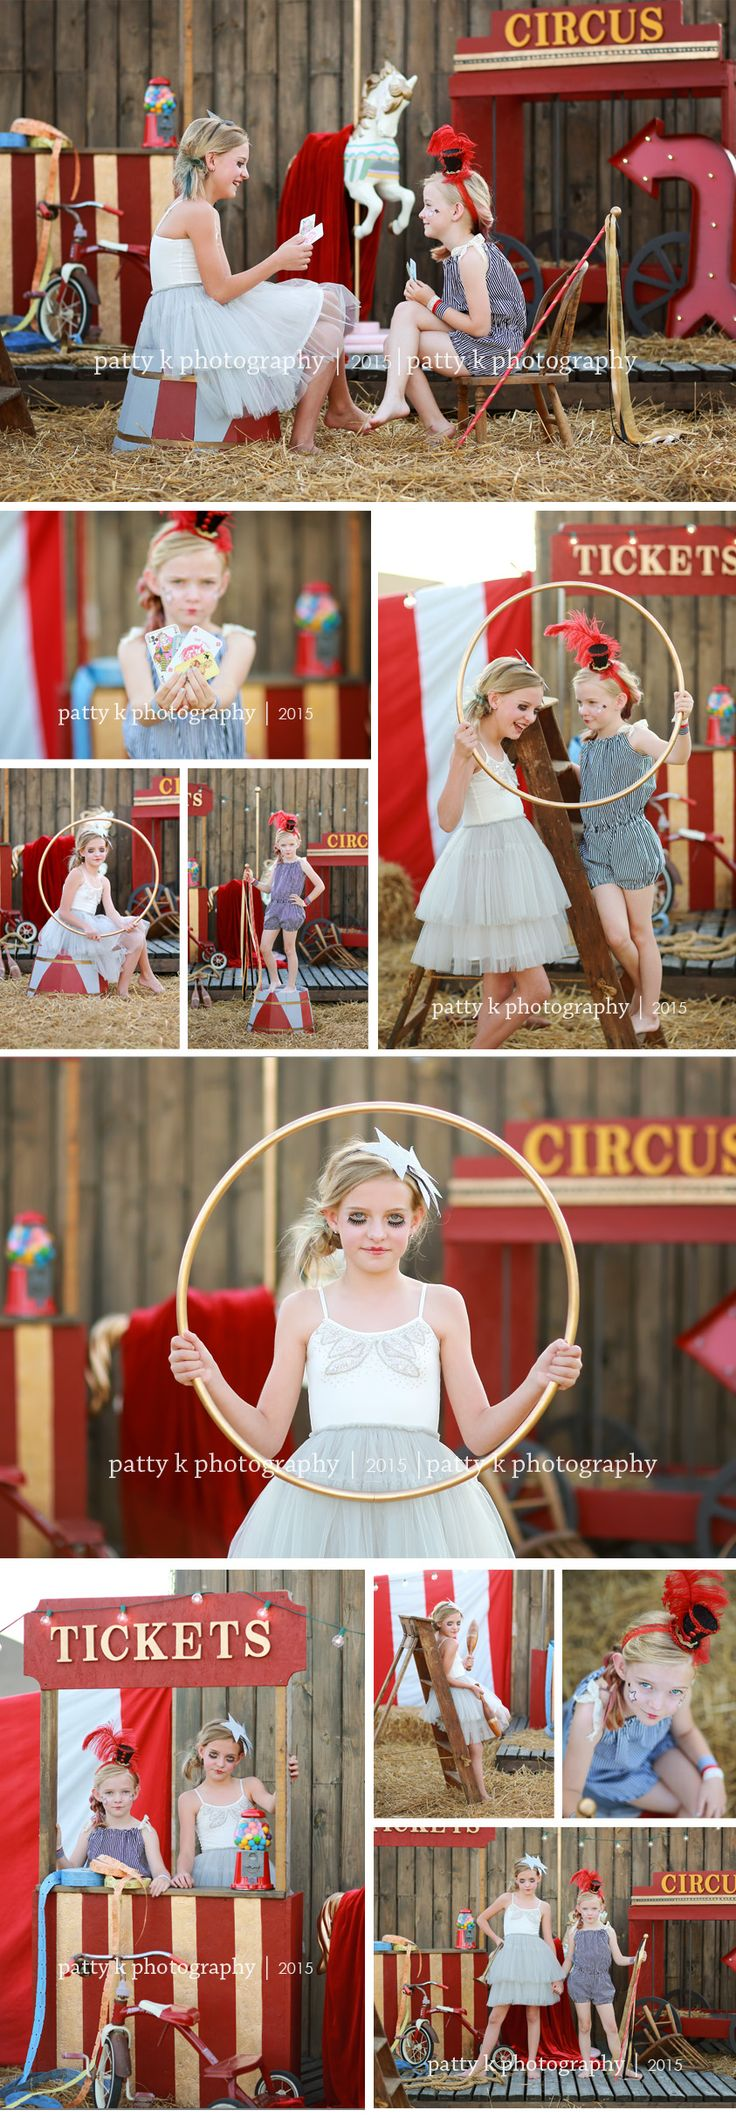 Circus Minis | Imagination Session | Mylie & Delaney | Raeford, NC Child Photographer | Patty K Photography